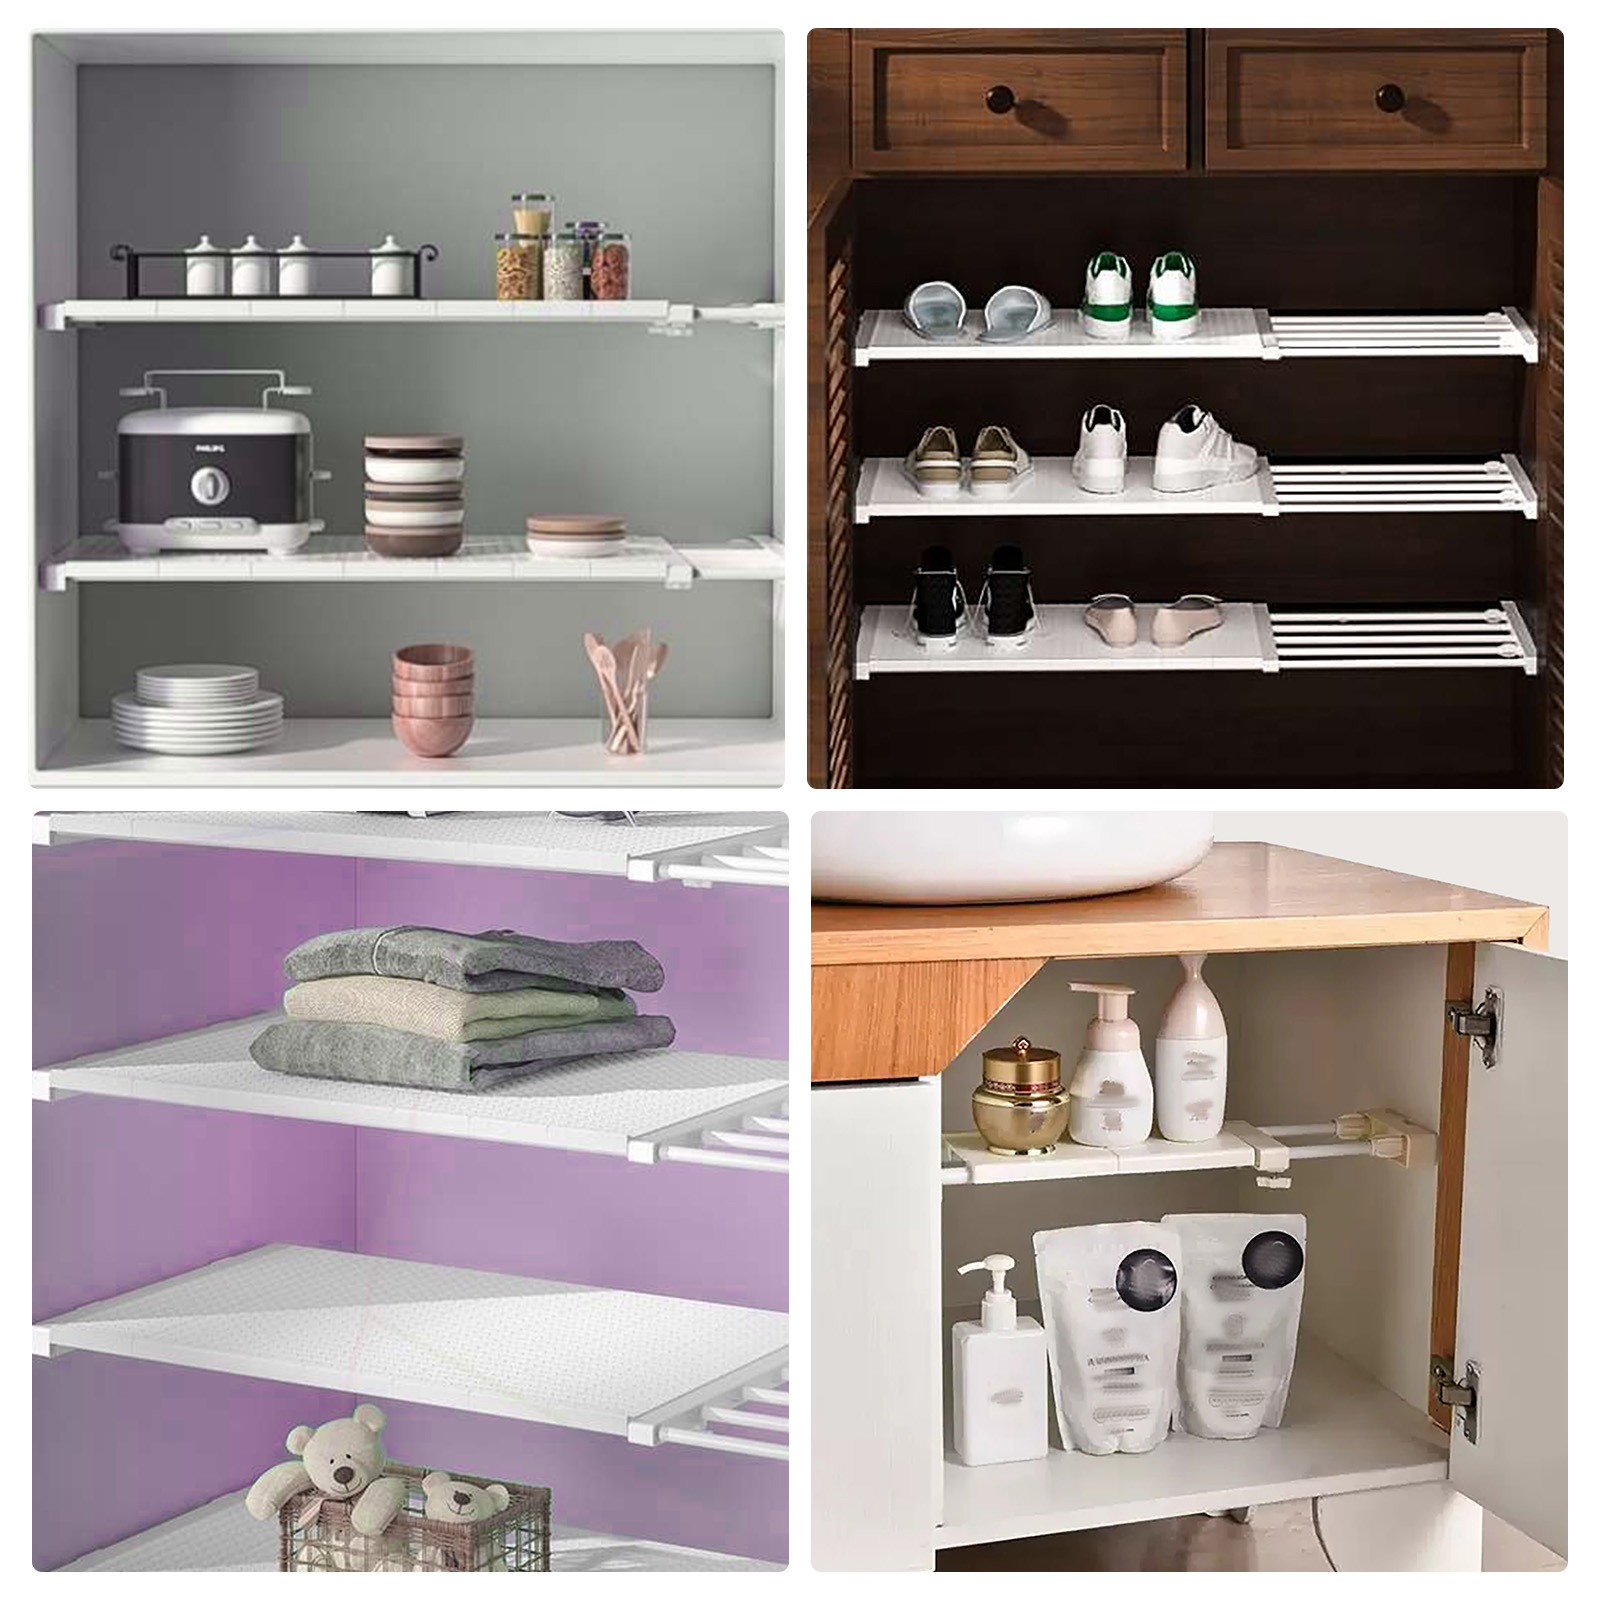 Adjustable Closet Organizer Storage Shelf Space Saving Wardrobe Wall Mounted Rack Kitchen Home Decorative Cabinet Holders